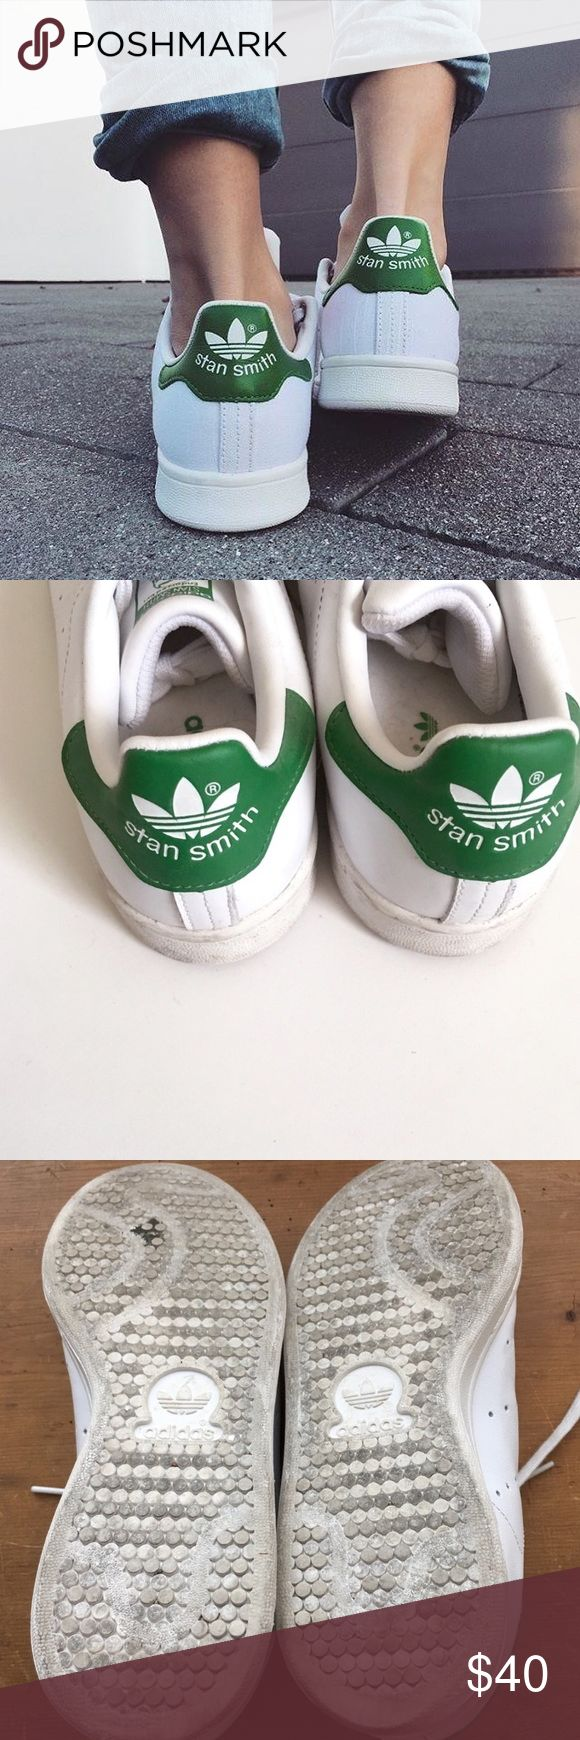 Original Stan Smith Adidas Sneakers These are THE ultimate necessity! They make every outfit look so cute whether it's dressed up or down. They are so comfortable and can be worn in any season. These will never go out of style!!! These have been worn but they have so much life left in them! I just never wear them anymore so I want to give them to a new loving owner! Offers are acceptable, but NO trades Adidas Shoes Sneakers